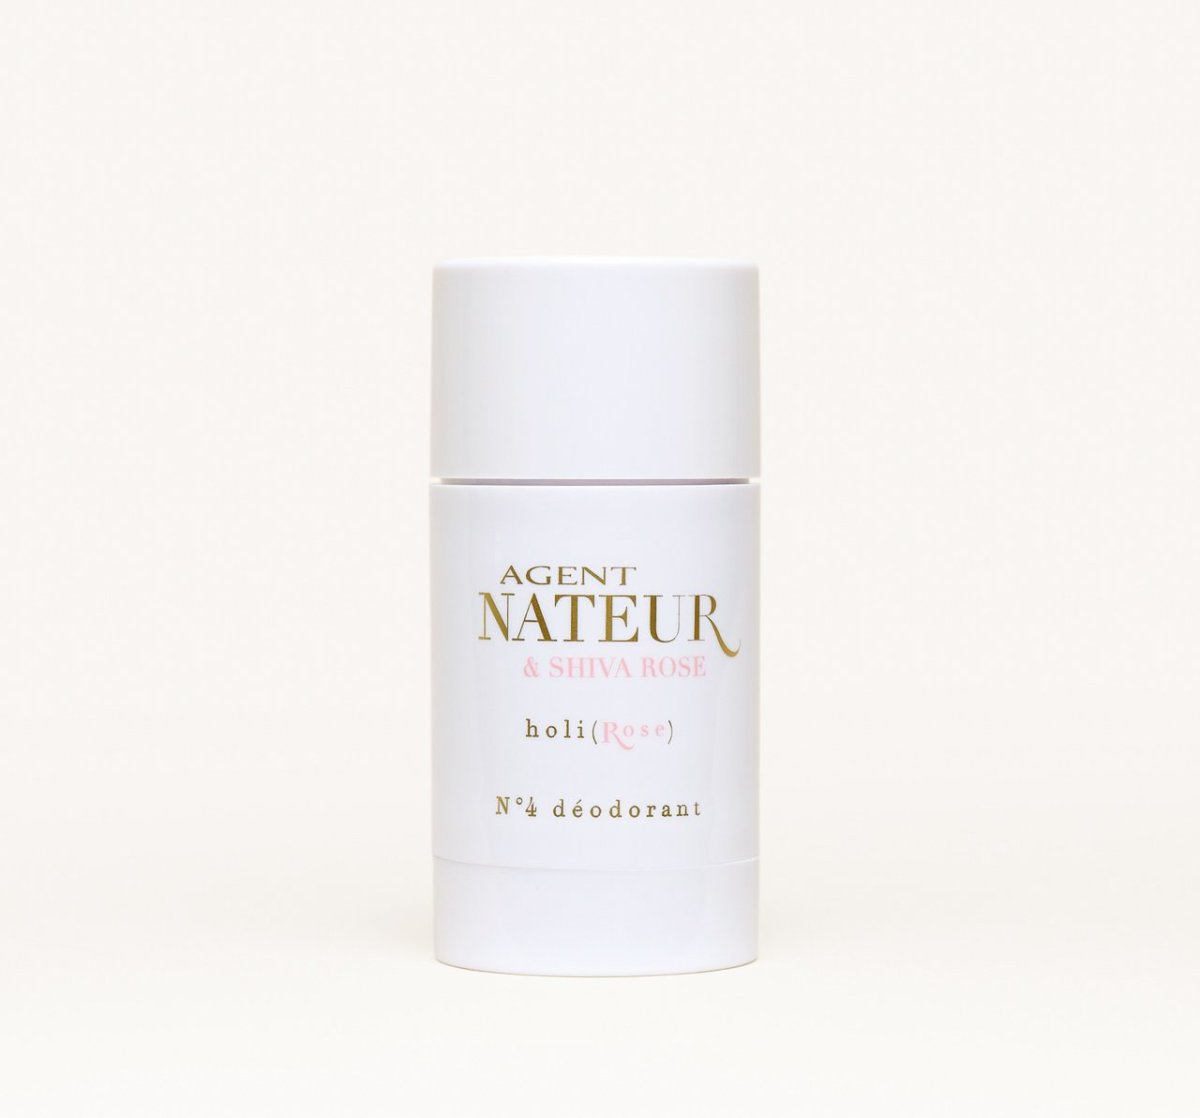 Shiva Rose and Agent Nateur Deodorant